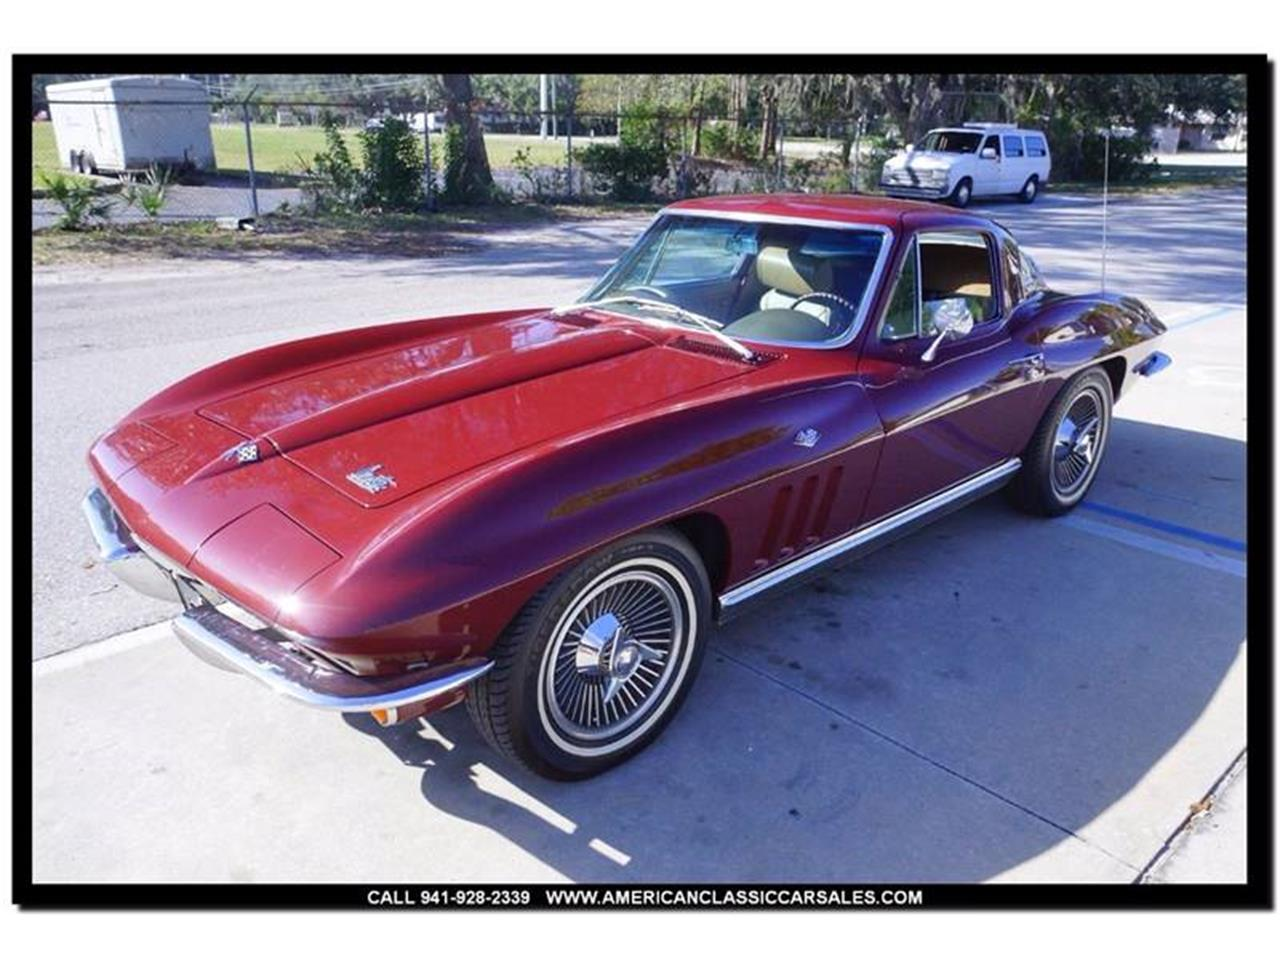 Large Picture of 1966 Chevrolet Corvette located in Florida - $74,880.00 - MHPA